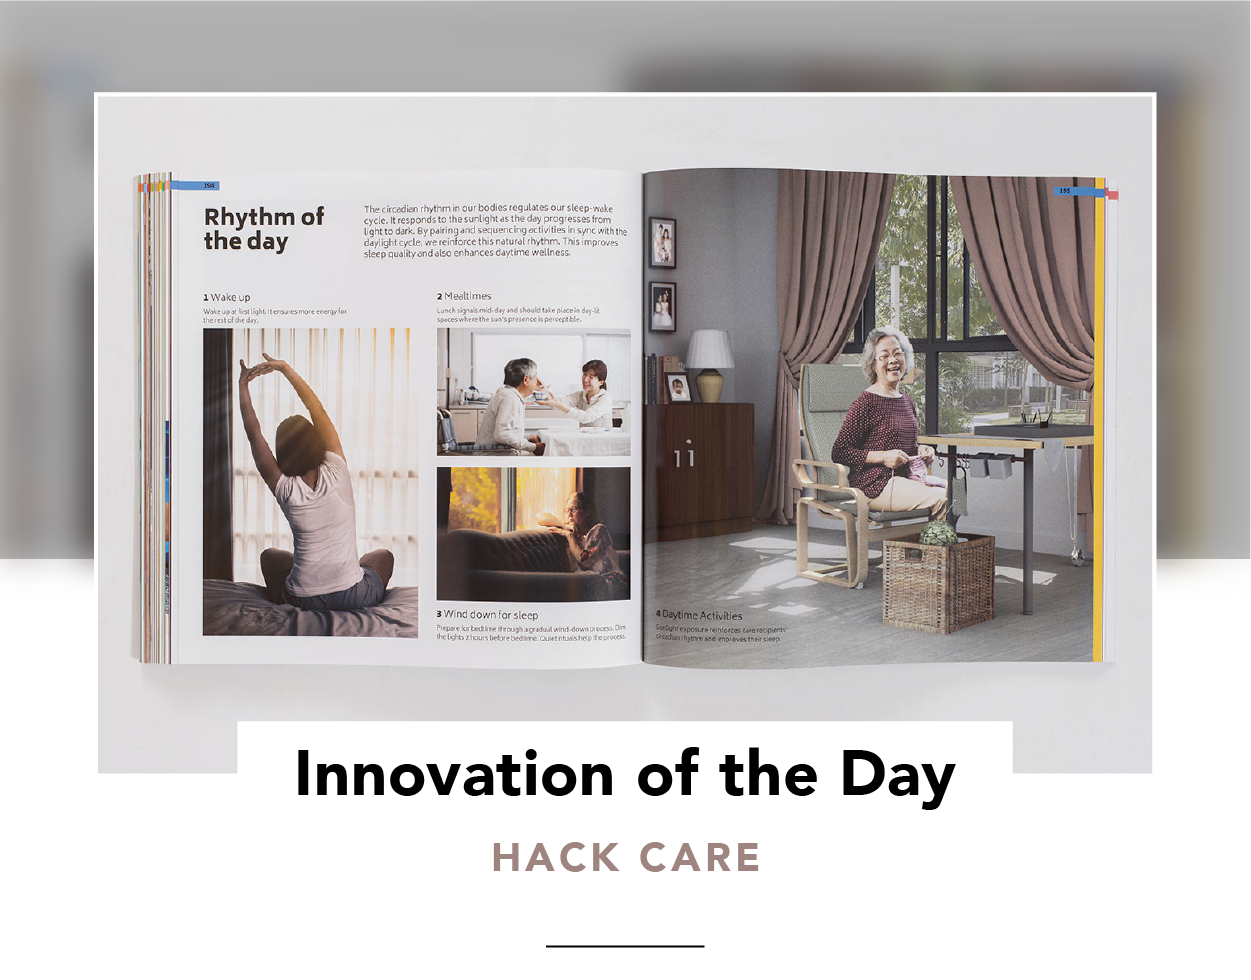 Innovation of the Day   IKEA-style catalog of DIY hacks to create a dementia-friendly home